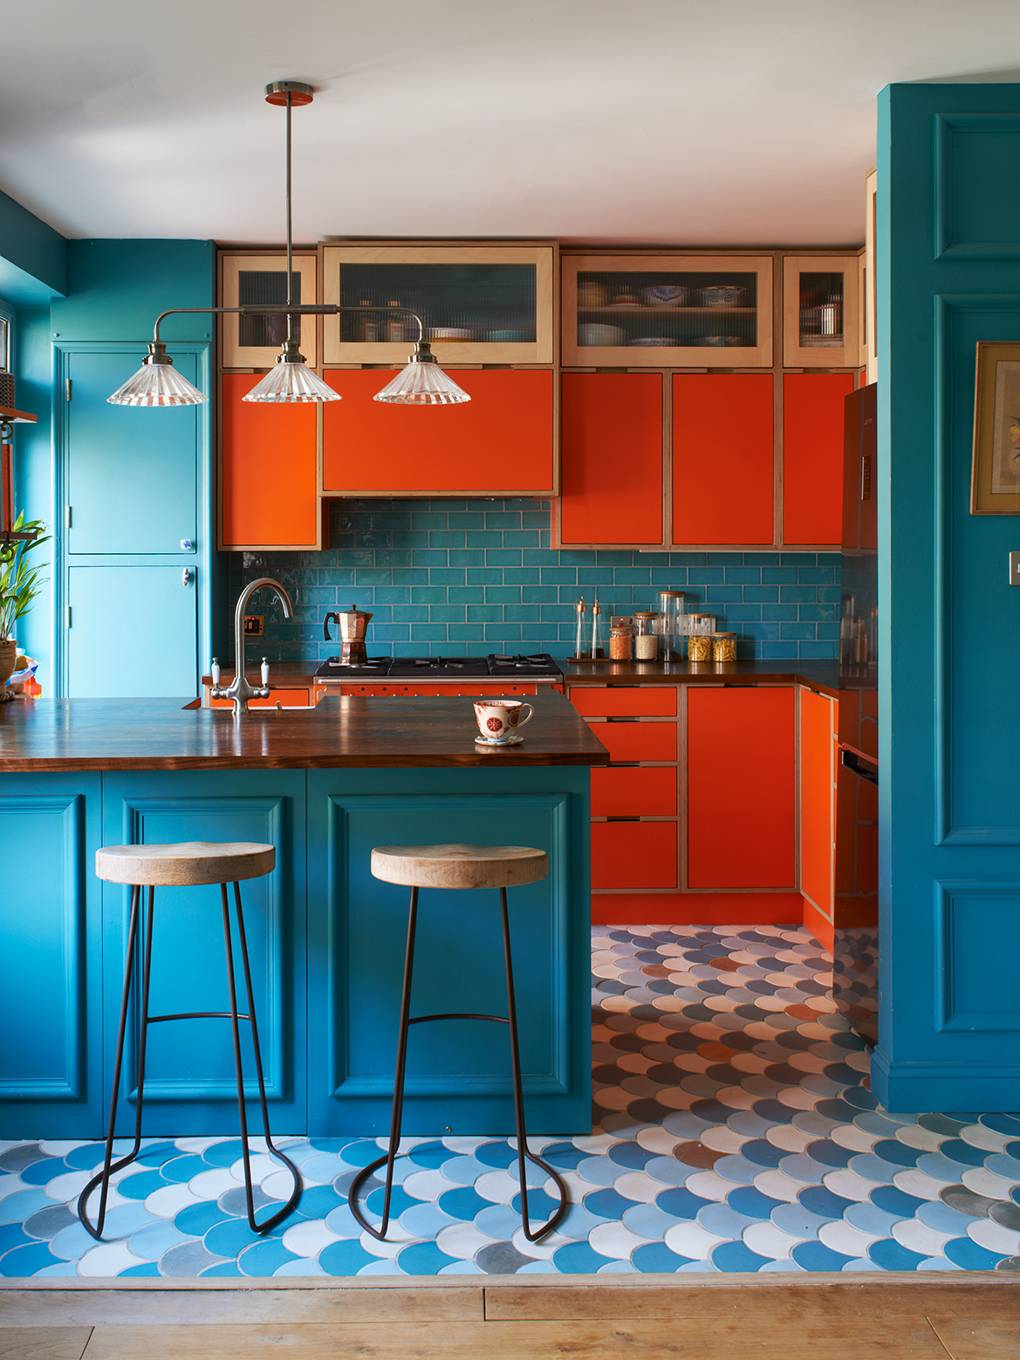 5 Easy Ways to Add Color Into Your Cooking Space